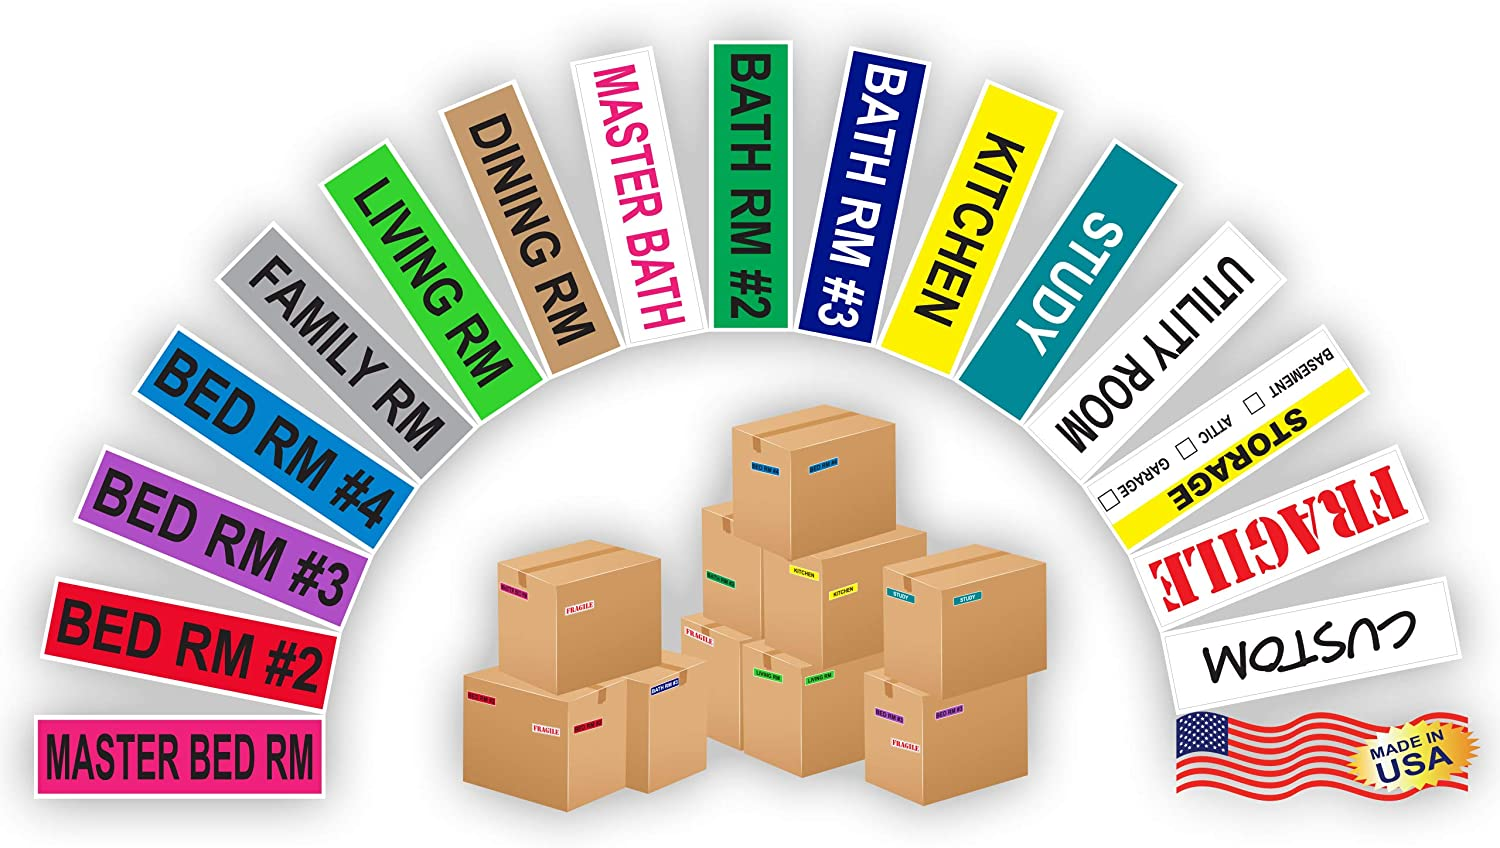 Kenco Color Coded Moving Labels - Full Box Pack - Includes Fragile Moving Supplies Packing Stickers (Room Pack)